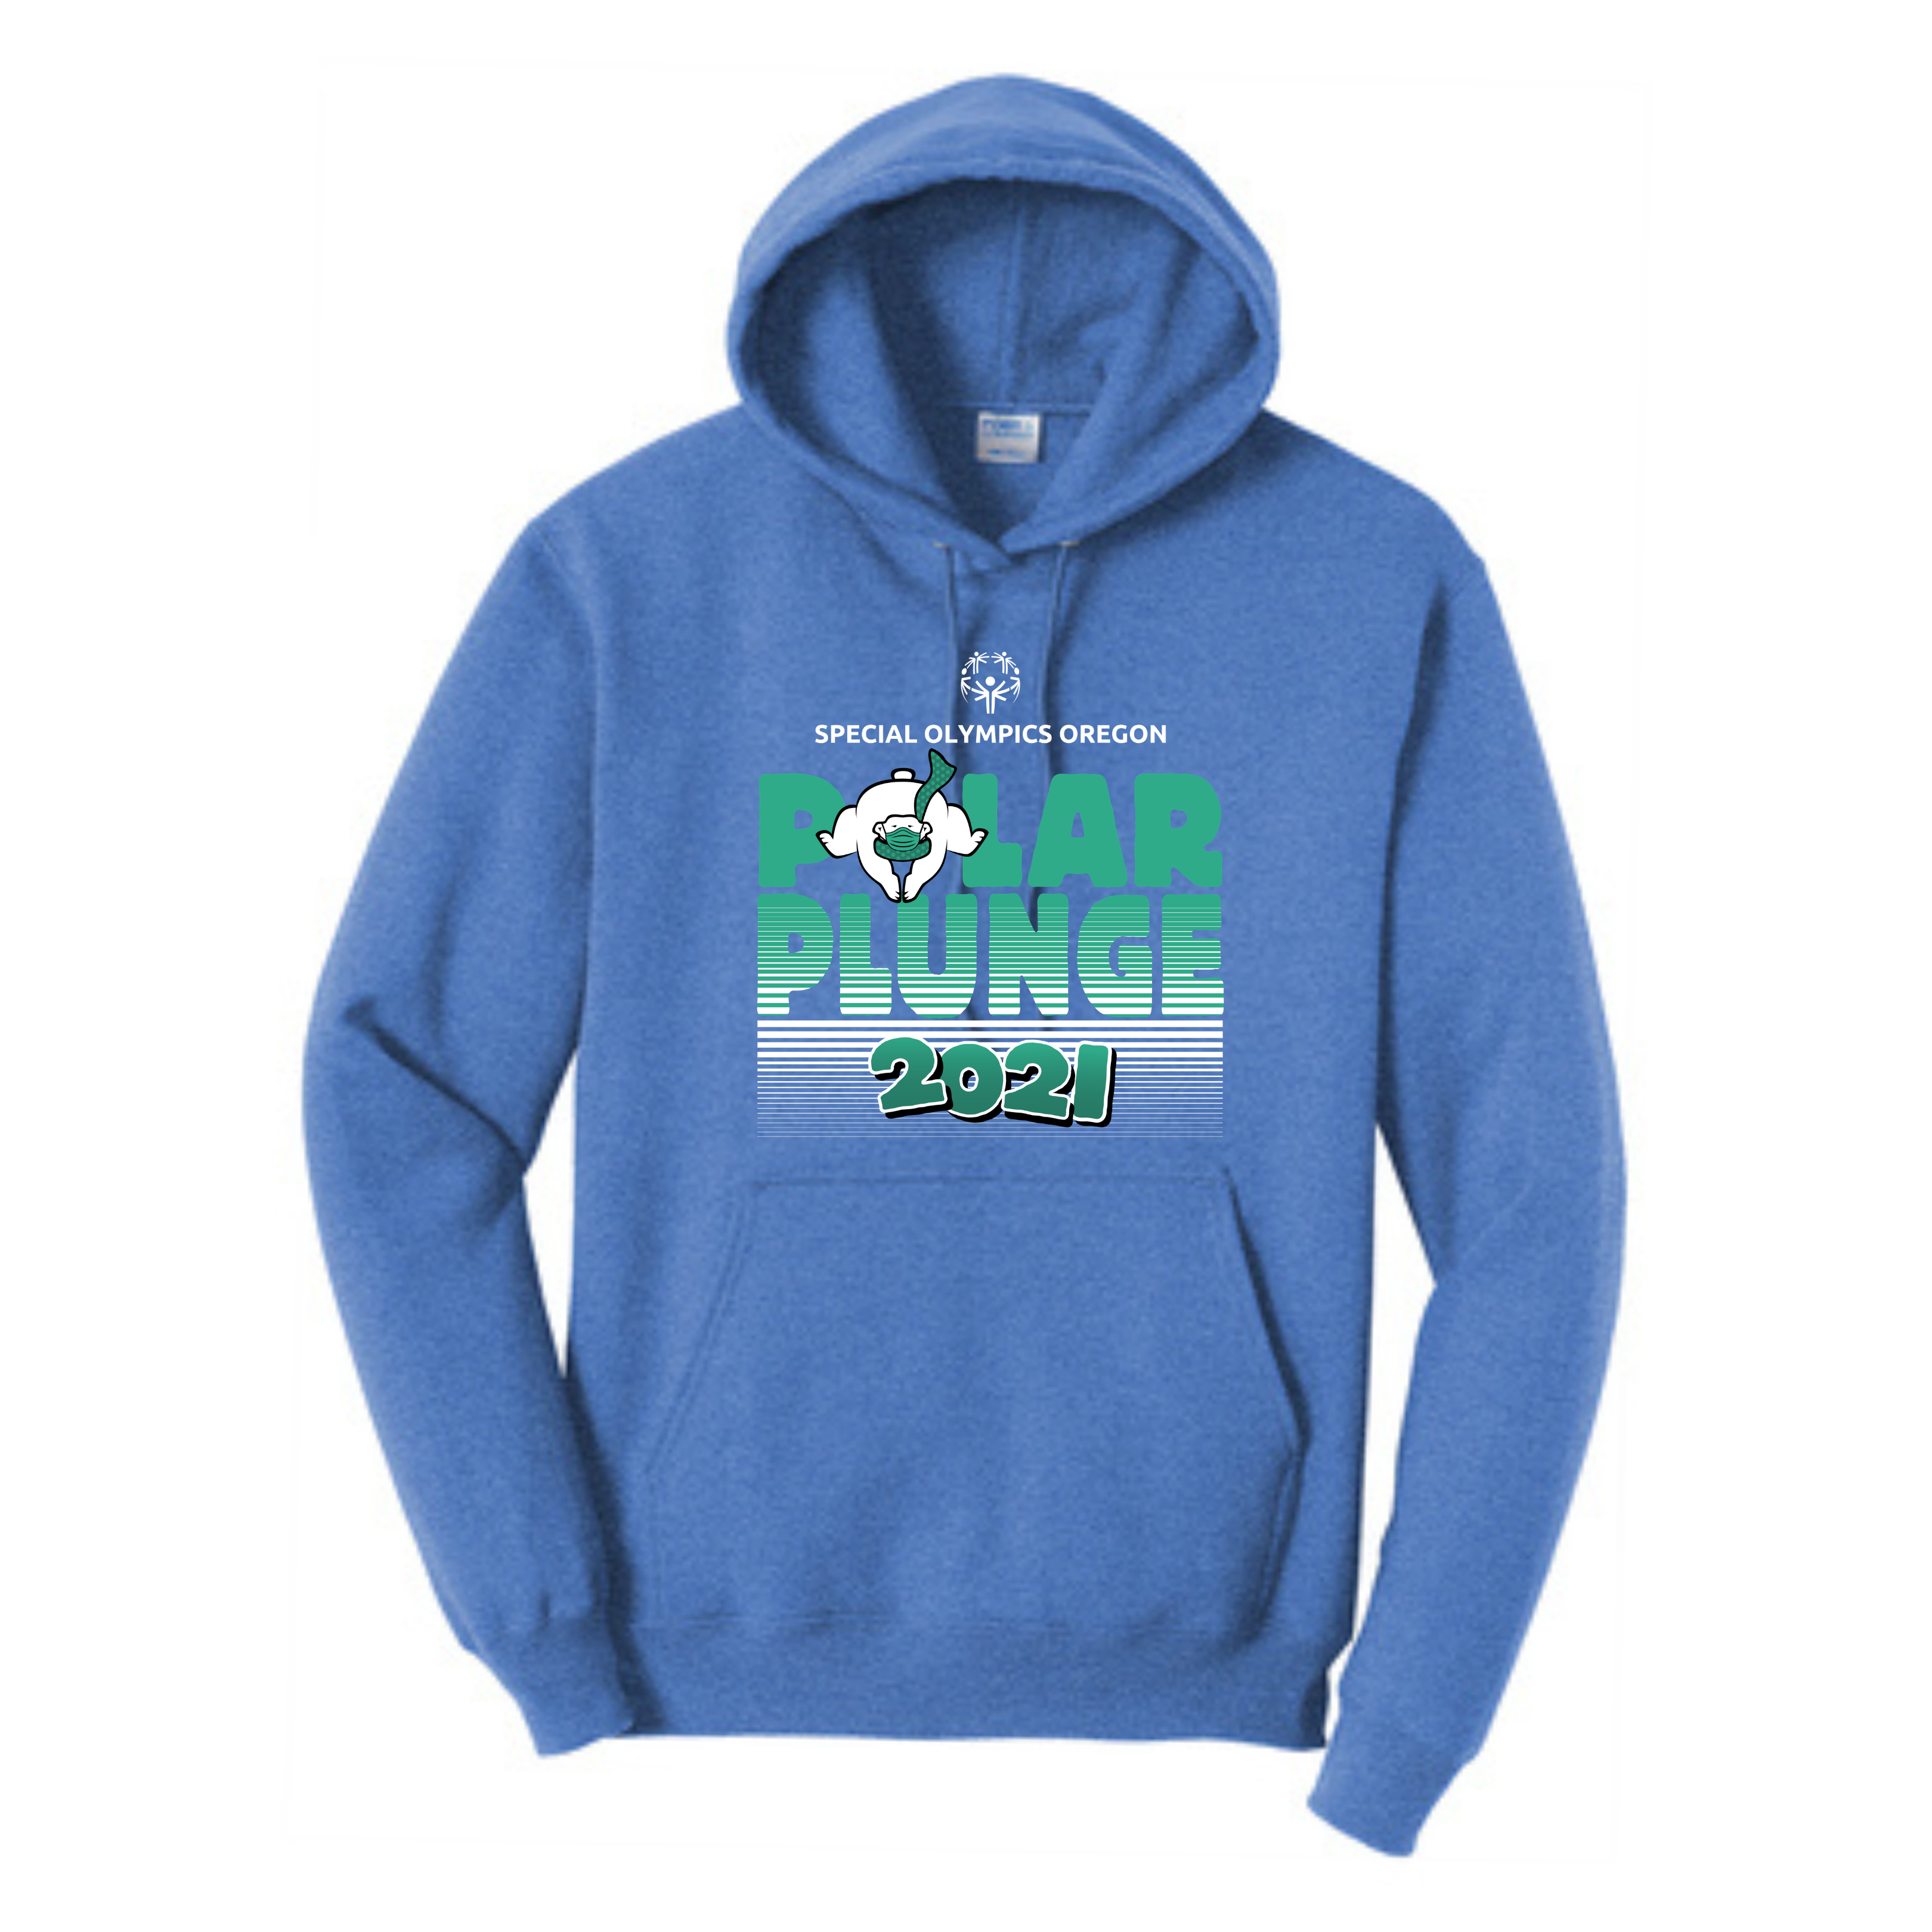 Blue heather sweatshirt with Plunge logo in green and white